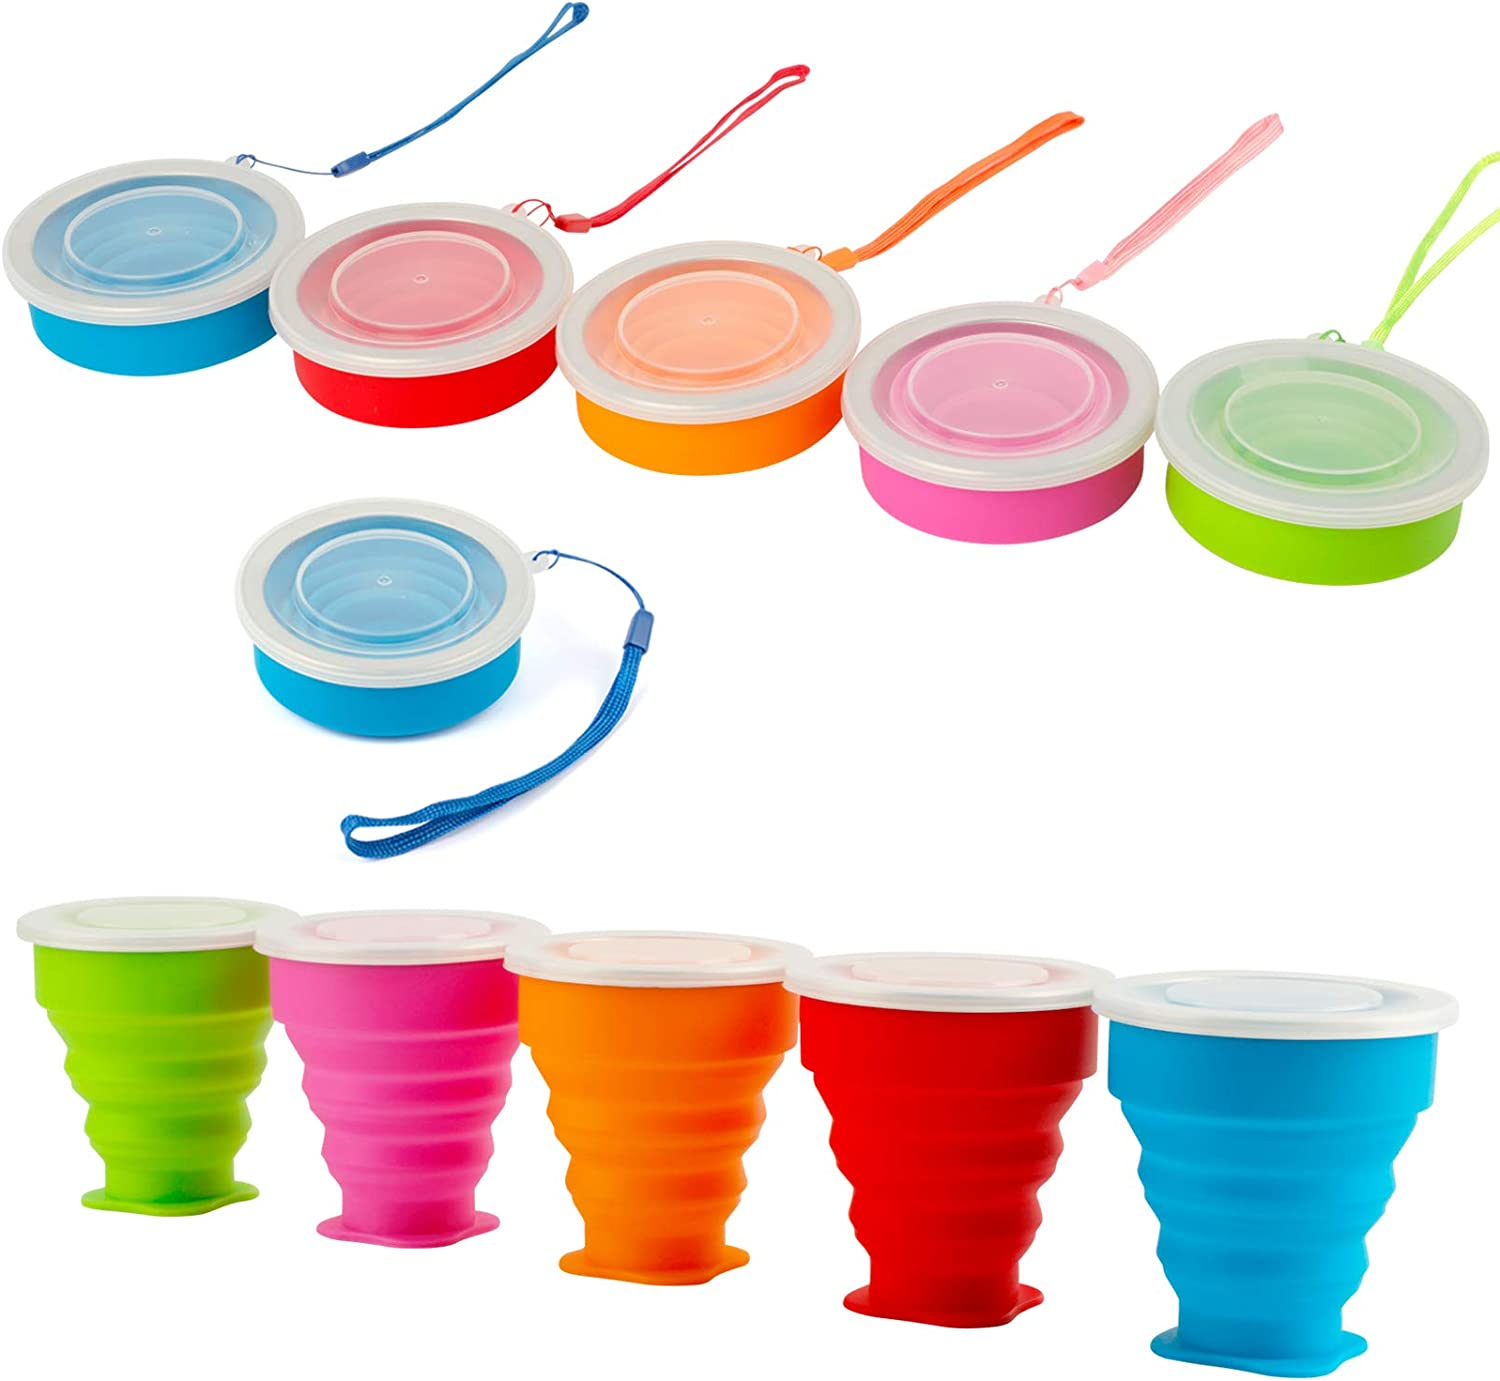 Congis Silicone Collapsible Travel Cup Camping Cup,Folding Camping Cup with Lids,BPA Free Portable Folding Travel Cup 5 Pack